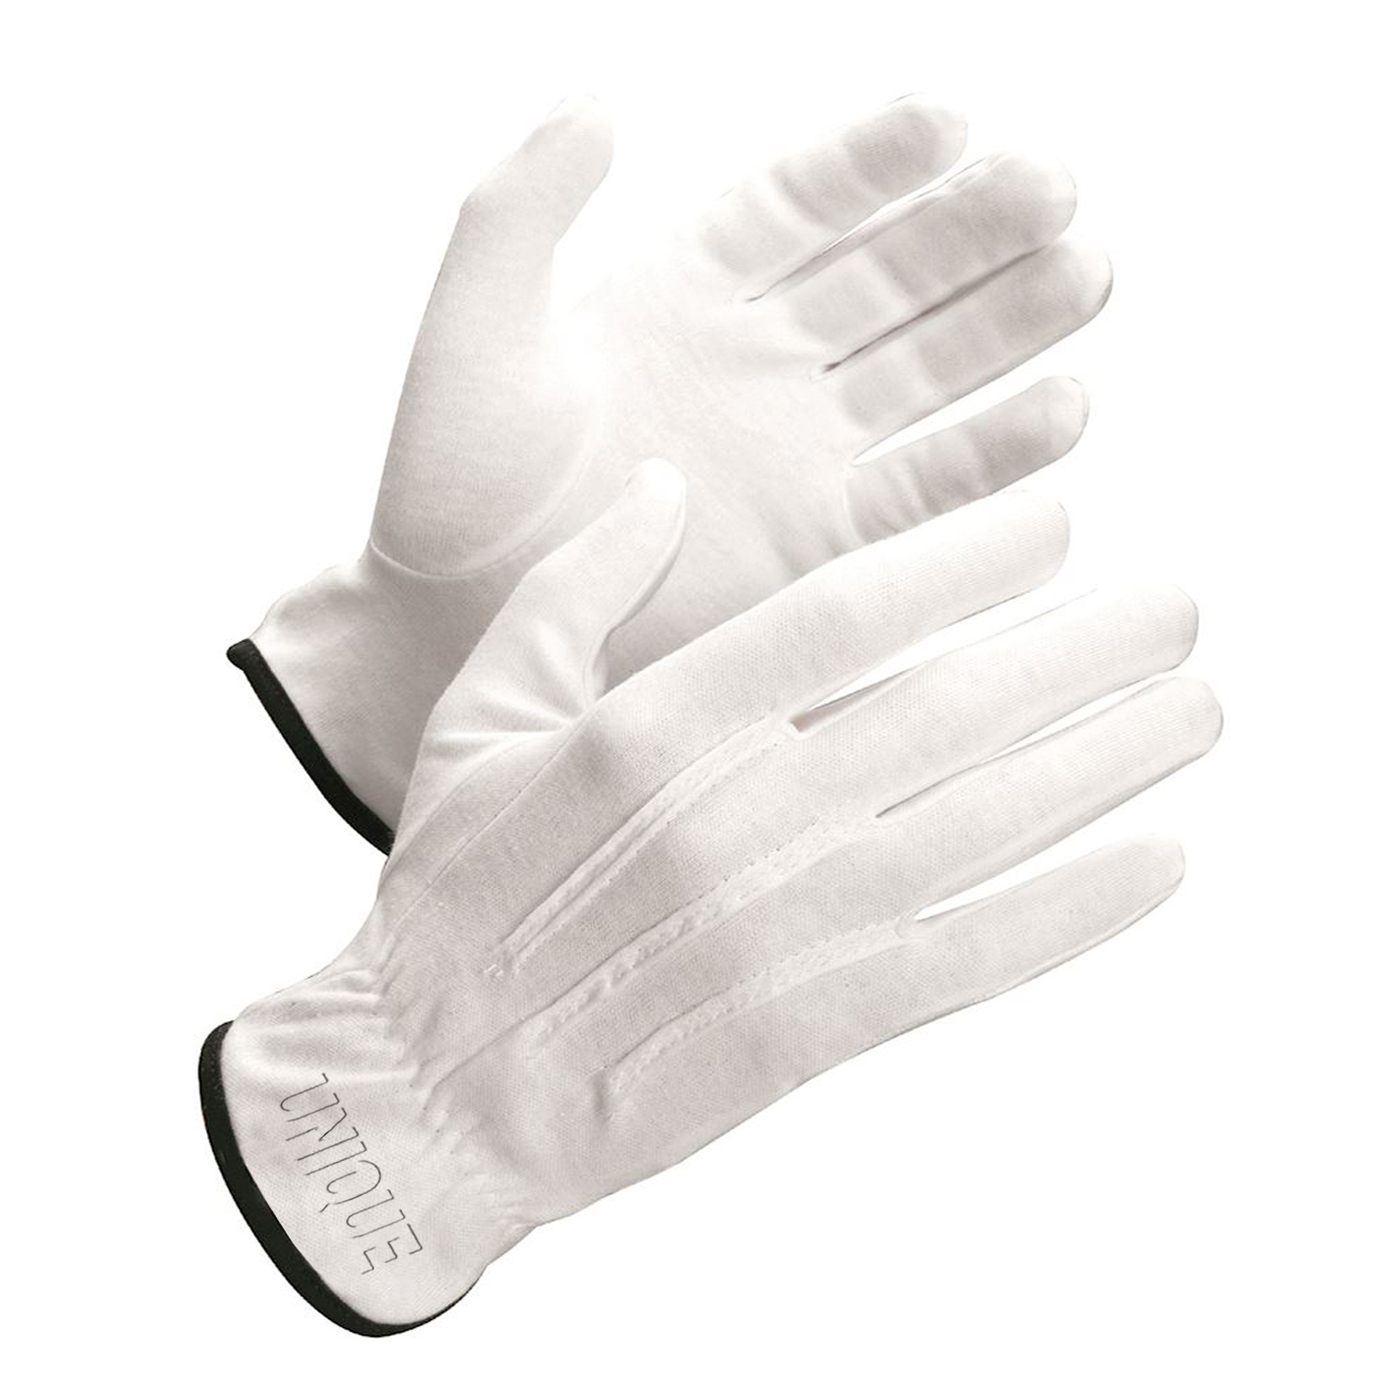 100% Cotton Knit Glove Palm And Fingers